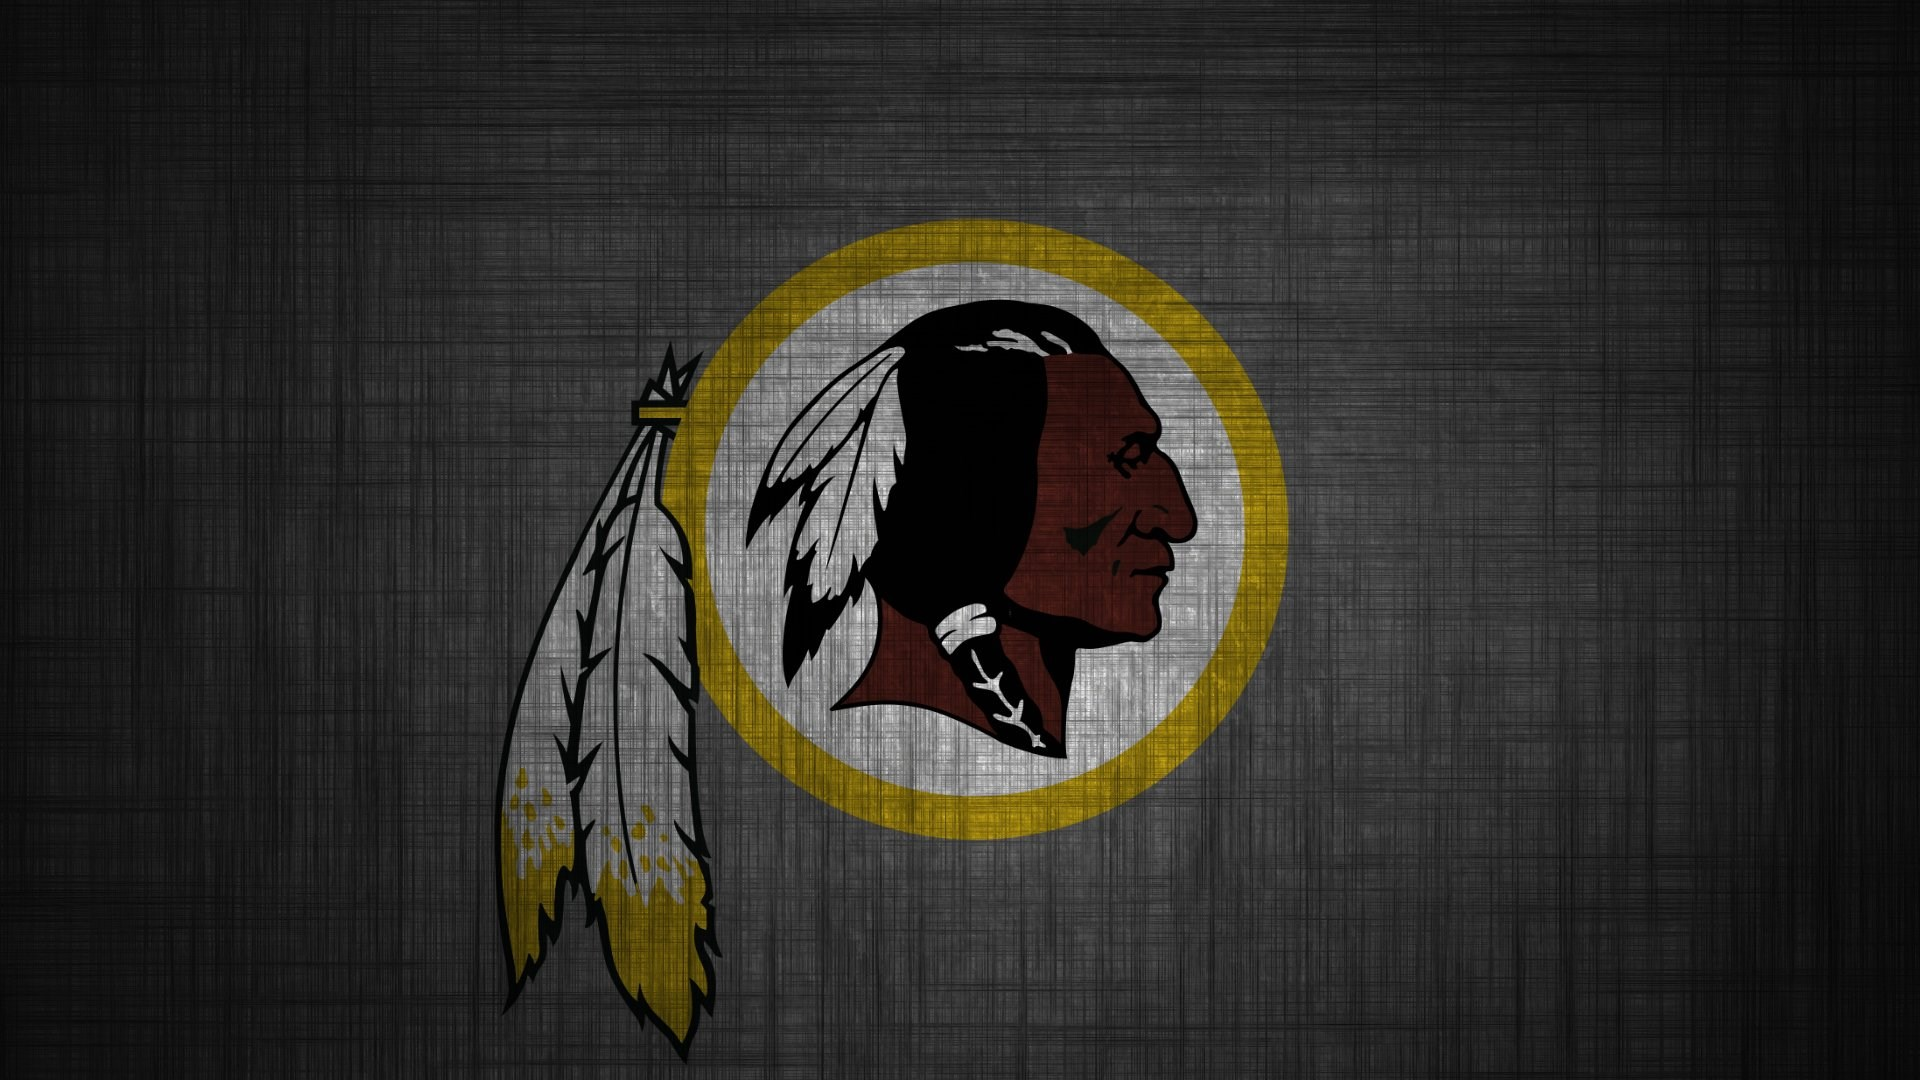 hd-redskins-1920-x-1080-kB-wallpaper-wpc9005947